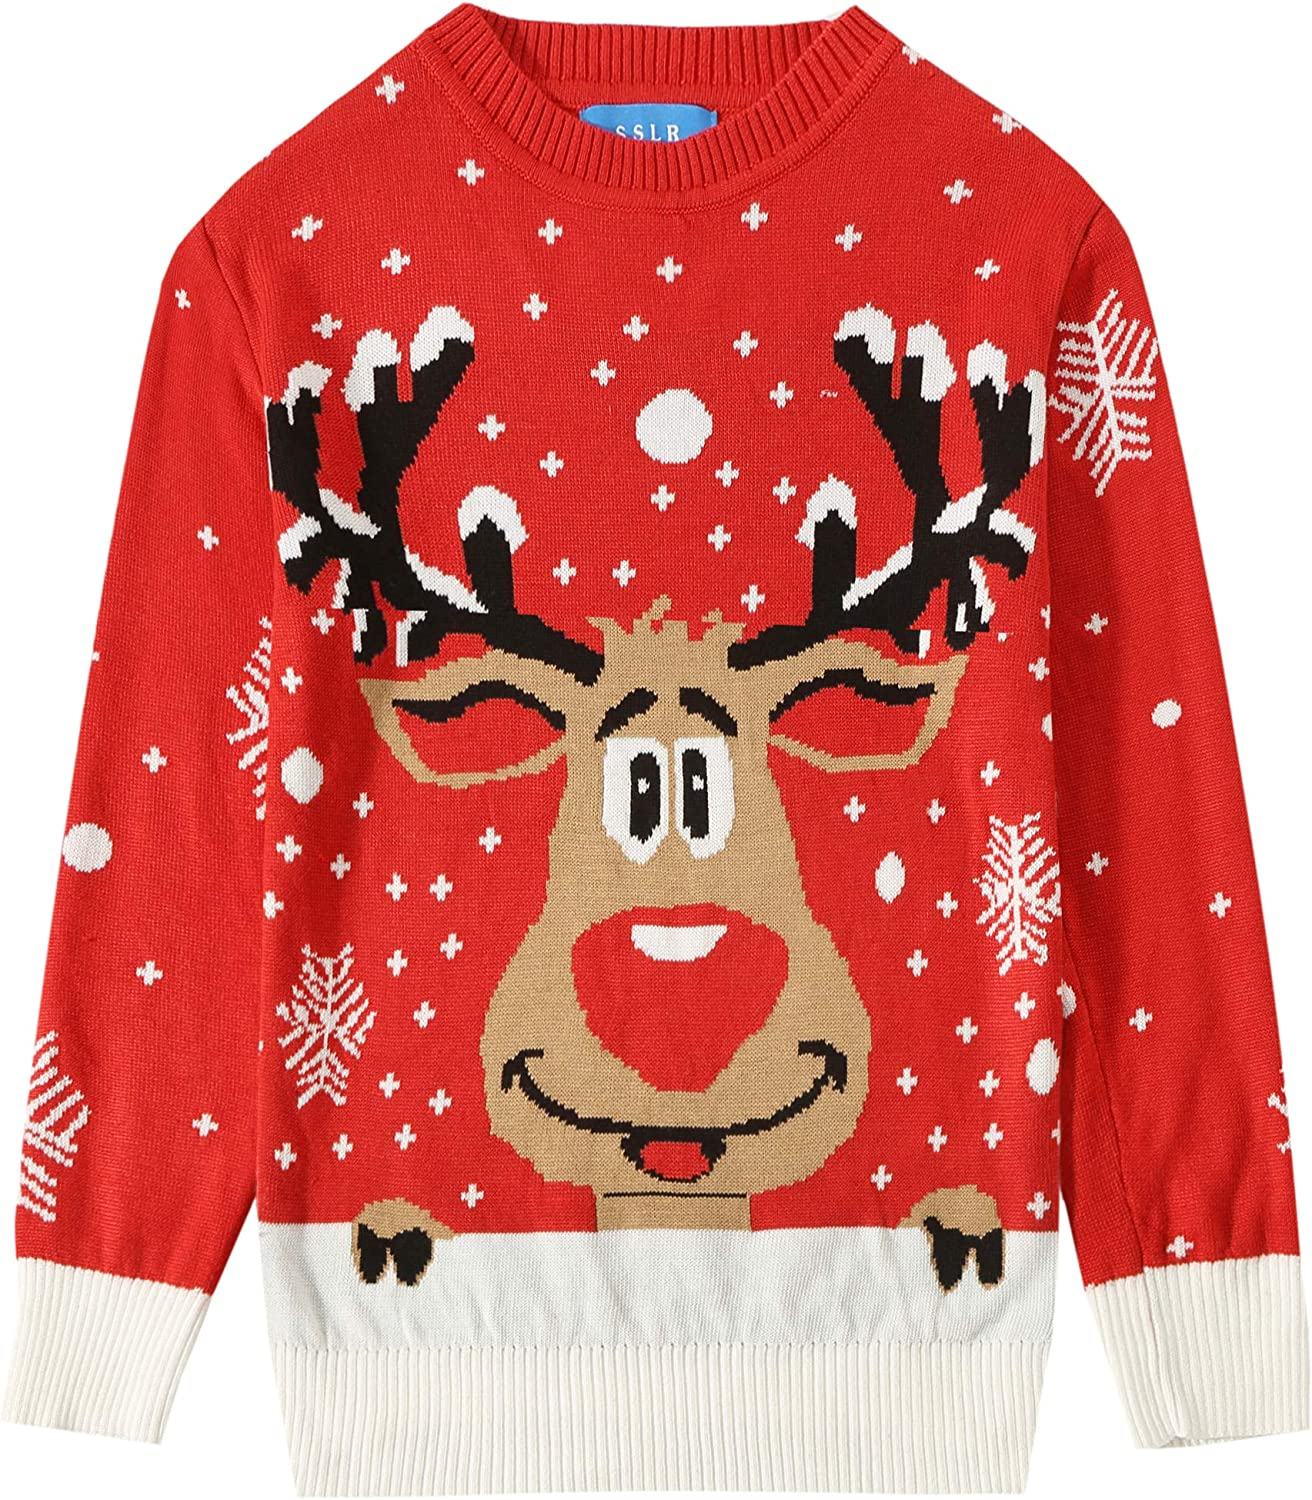 SSLR Youth Big Boys Holiday Santa Clause Knitted Sweater Ugly Christmas Sweater for Kids